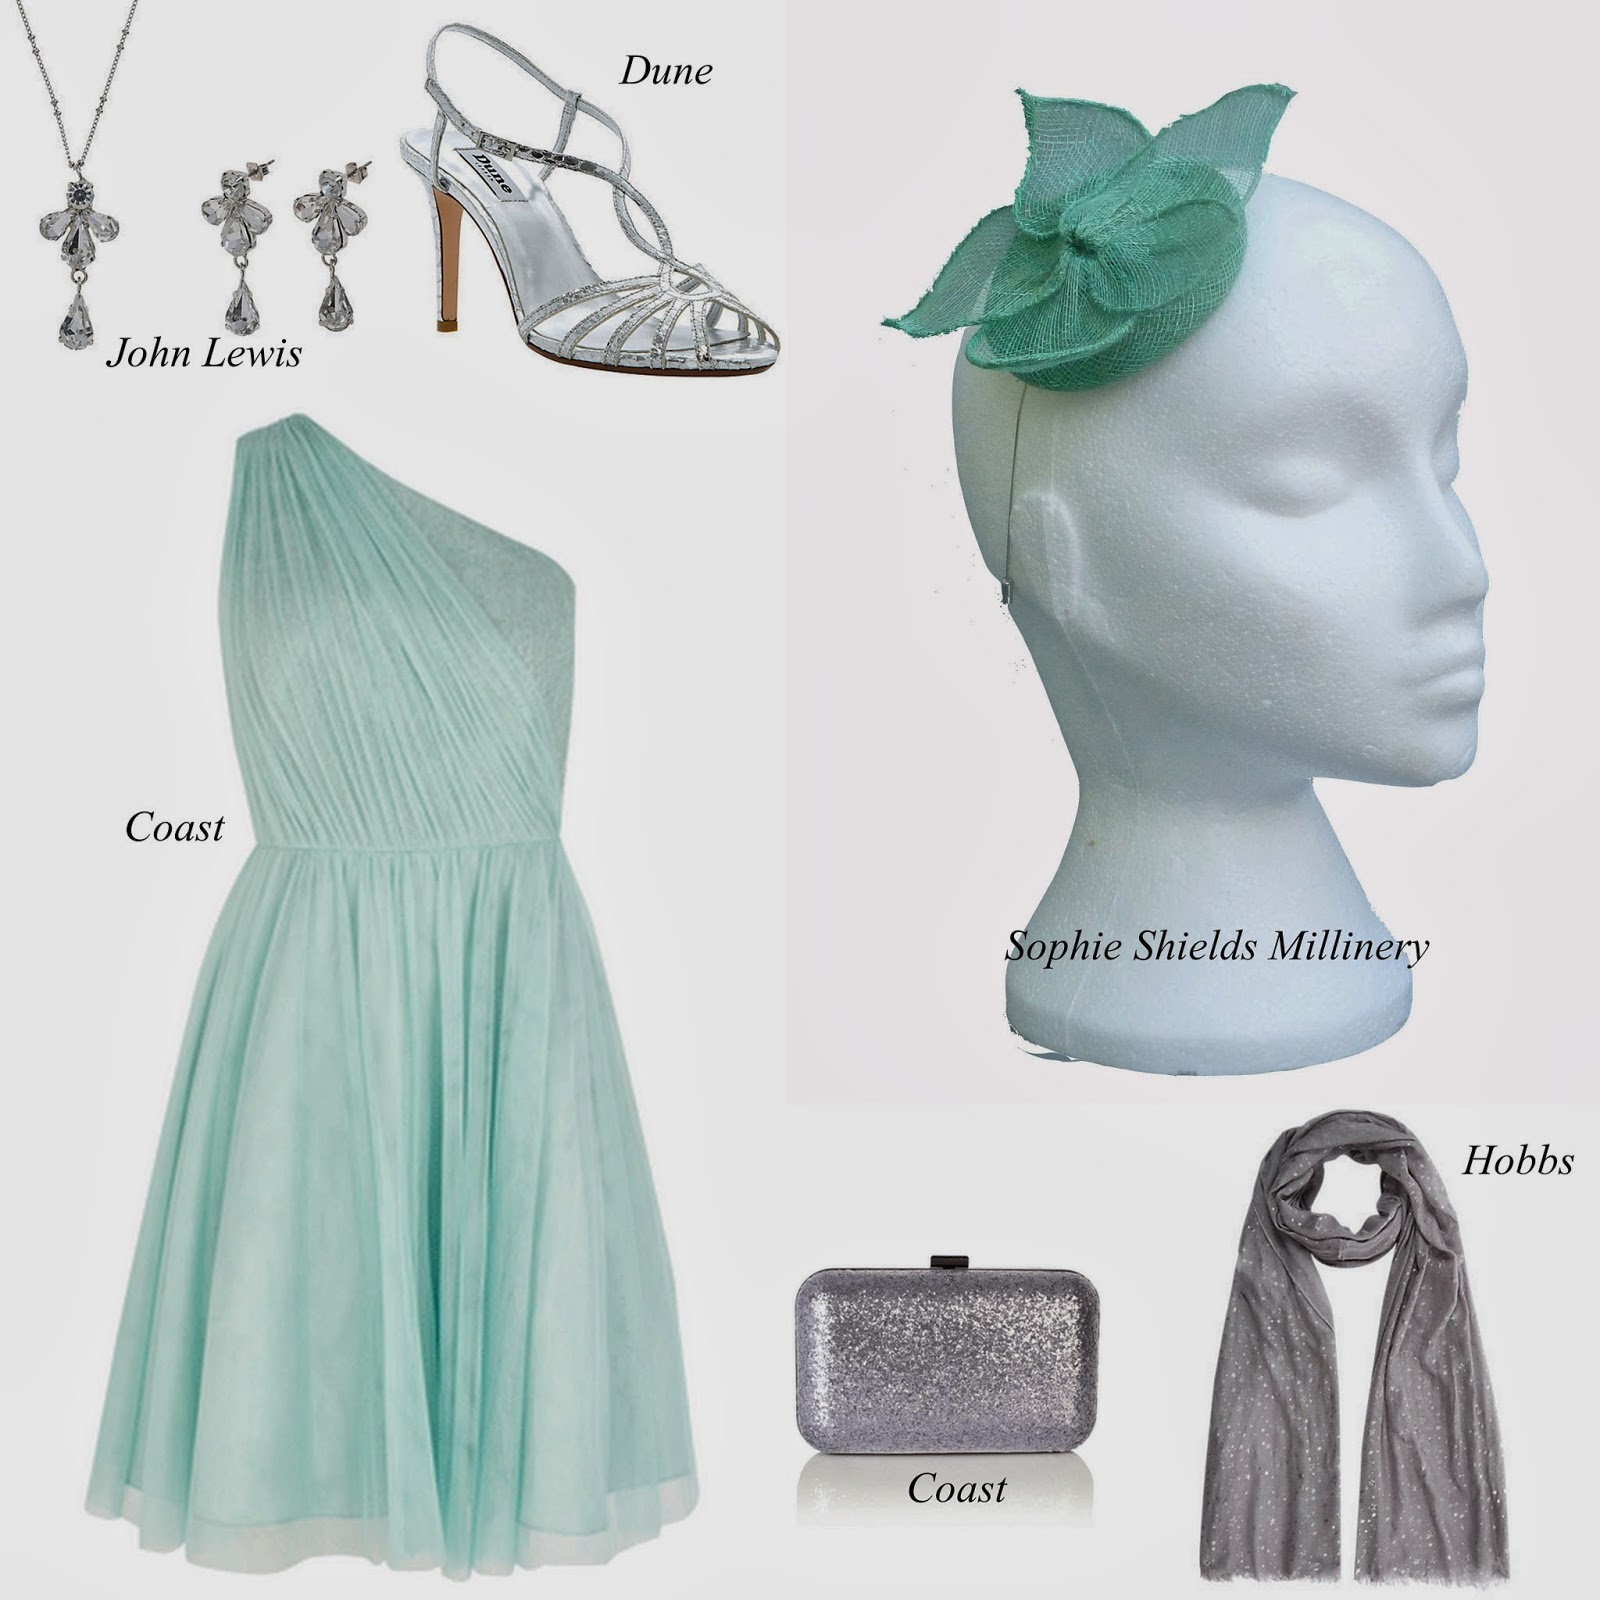 Sophie Shields Millinery - Hats and Fascinators: How to Choose a ...